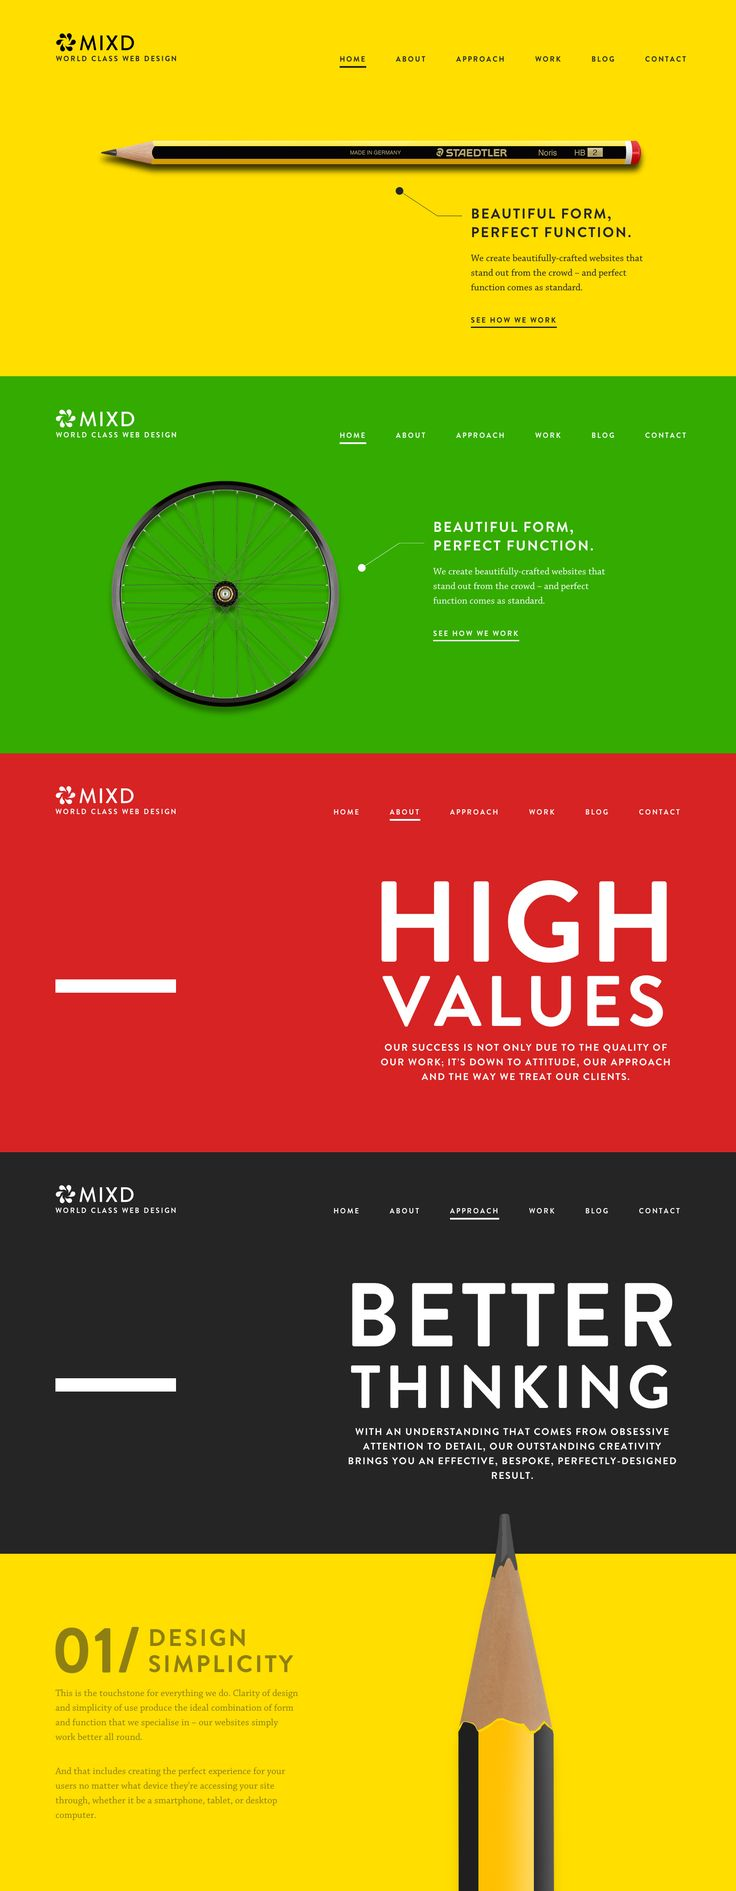 mixd 29 july 2013 sites of the day